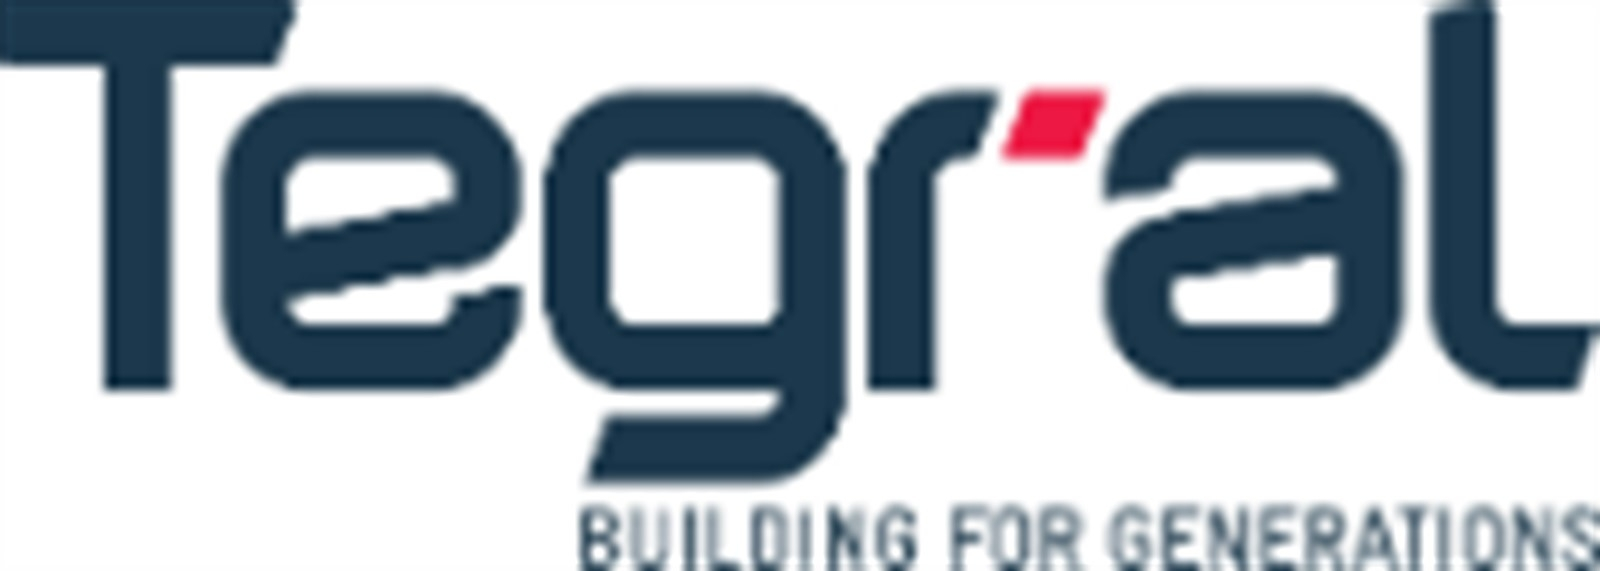 Tegral Building Products Ltd (@tegralbuildingproducts1) Cover Image